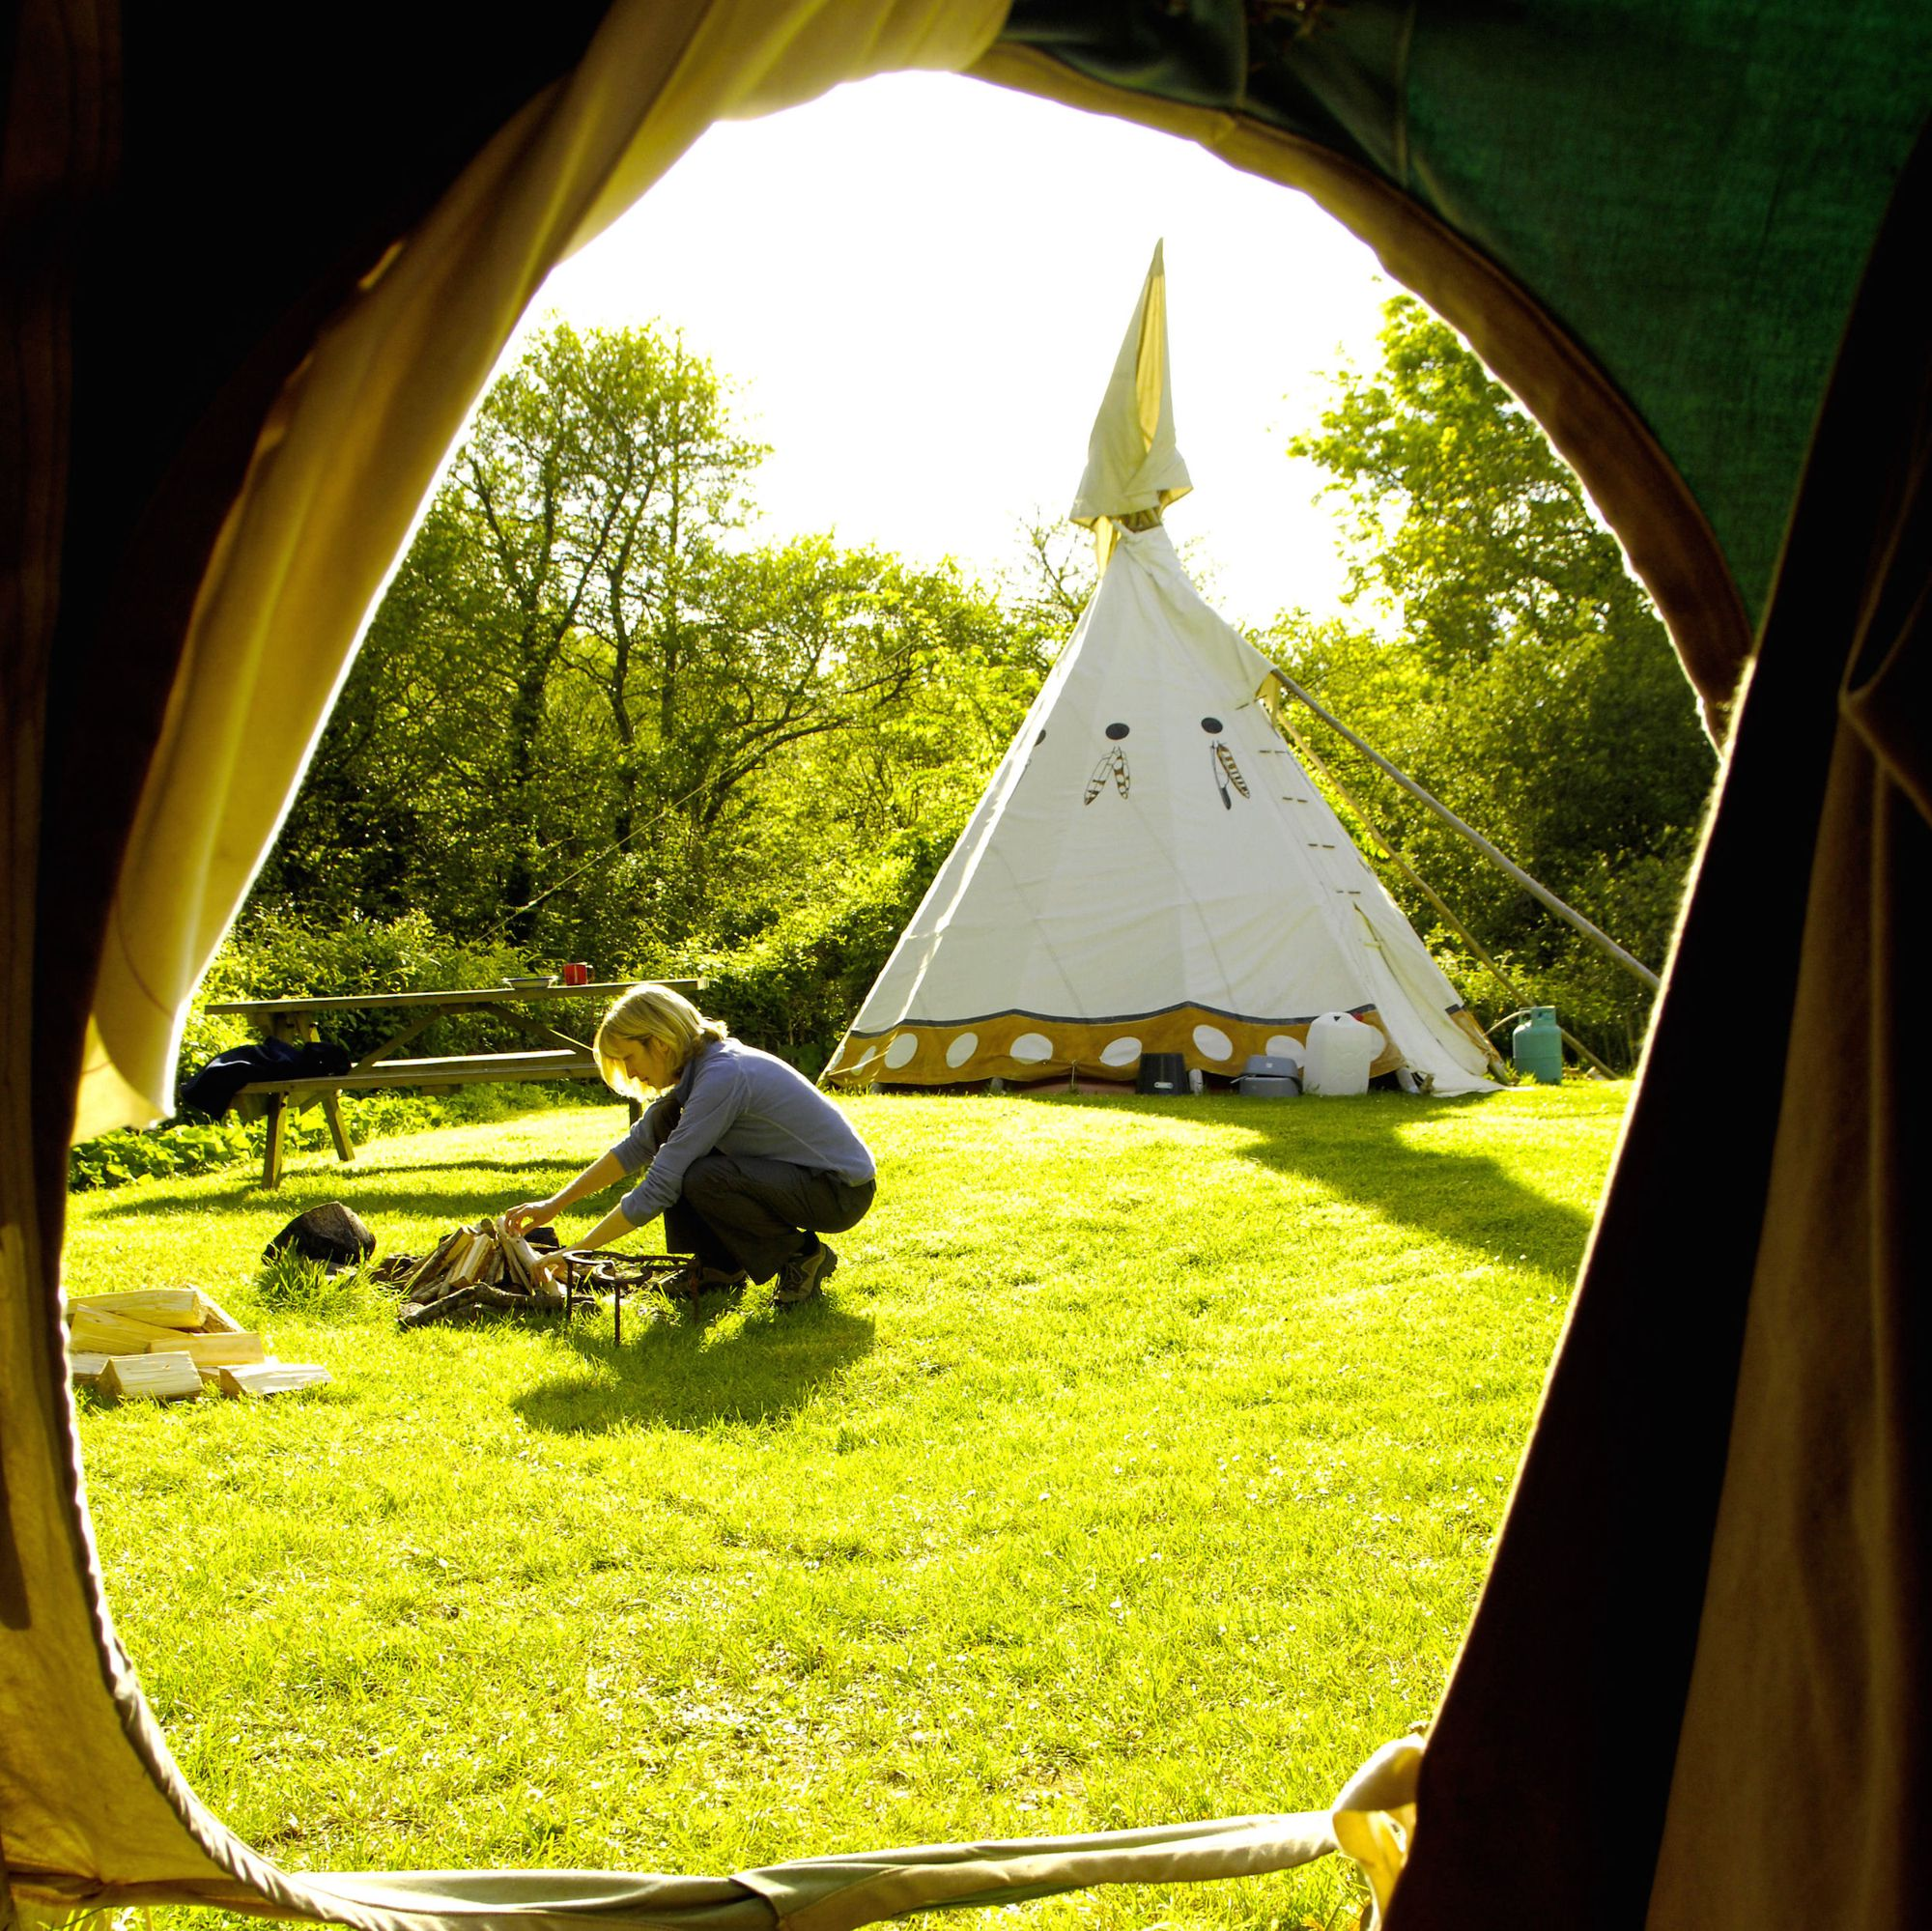 This is state-of-the art camping darling! Tipi huts nestled next to a beautiful aquamarine lake. Fabulously decadent!